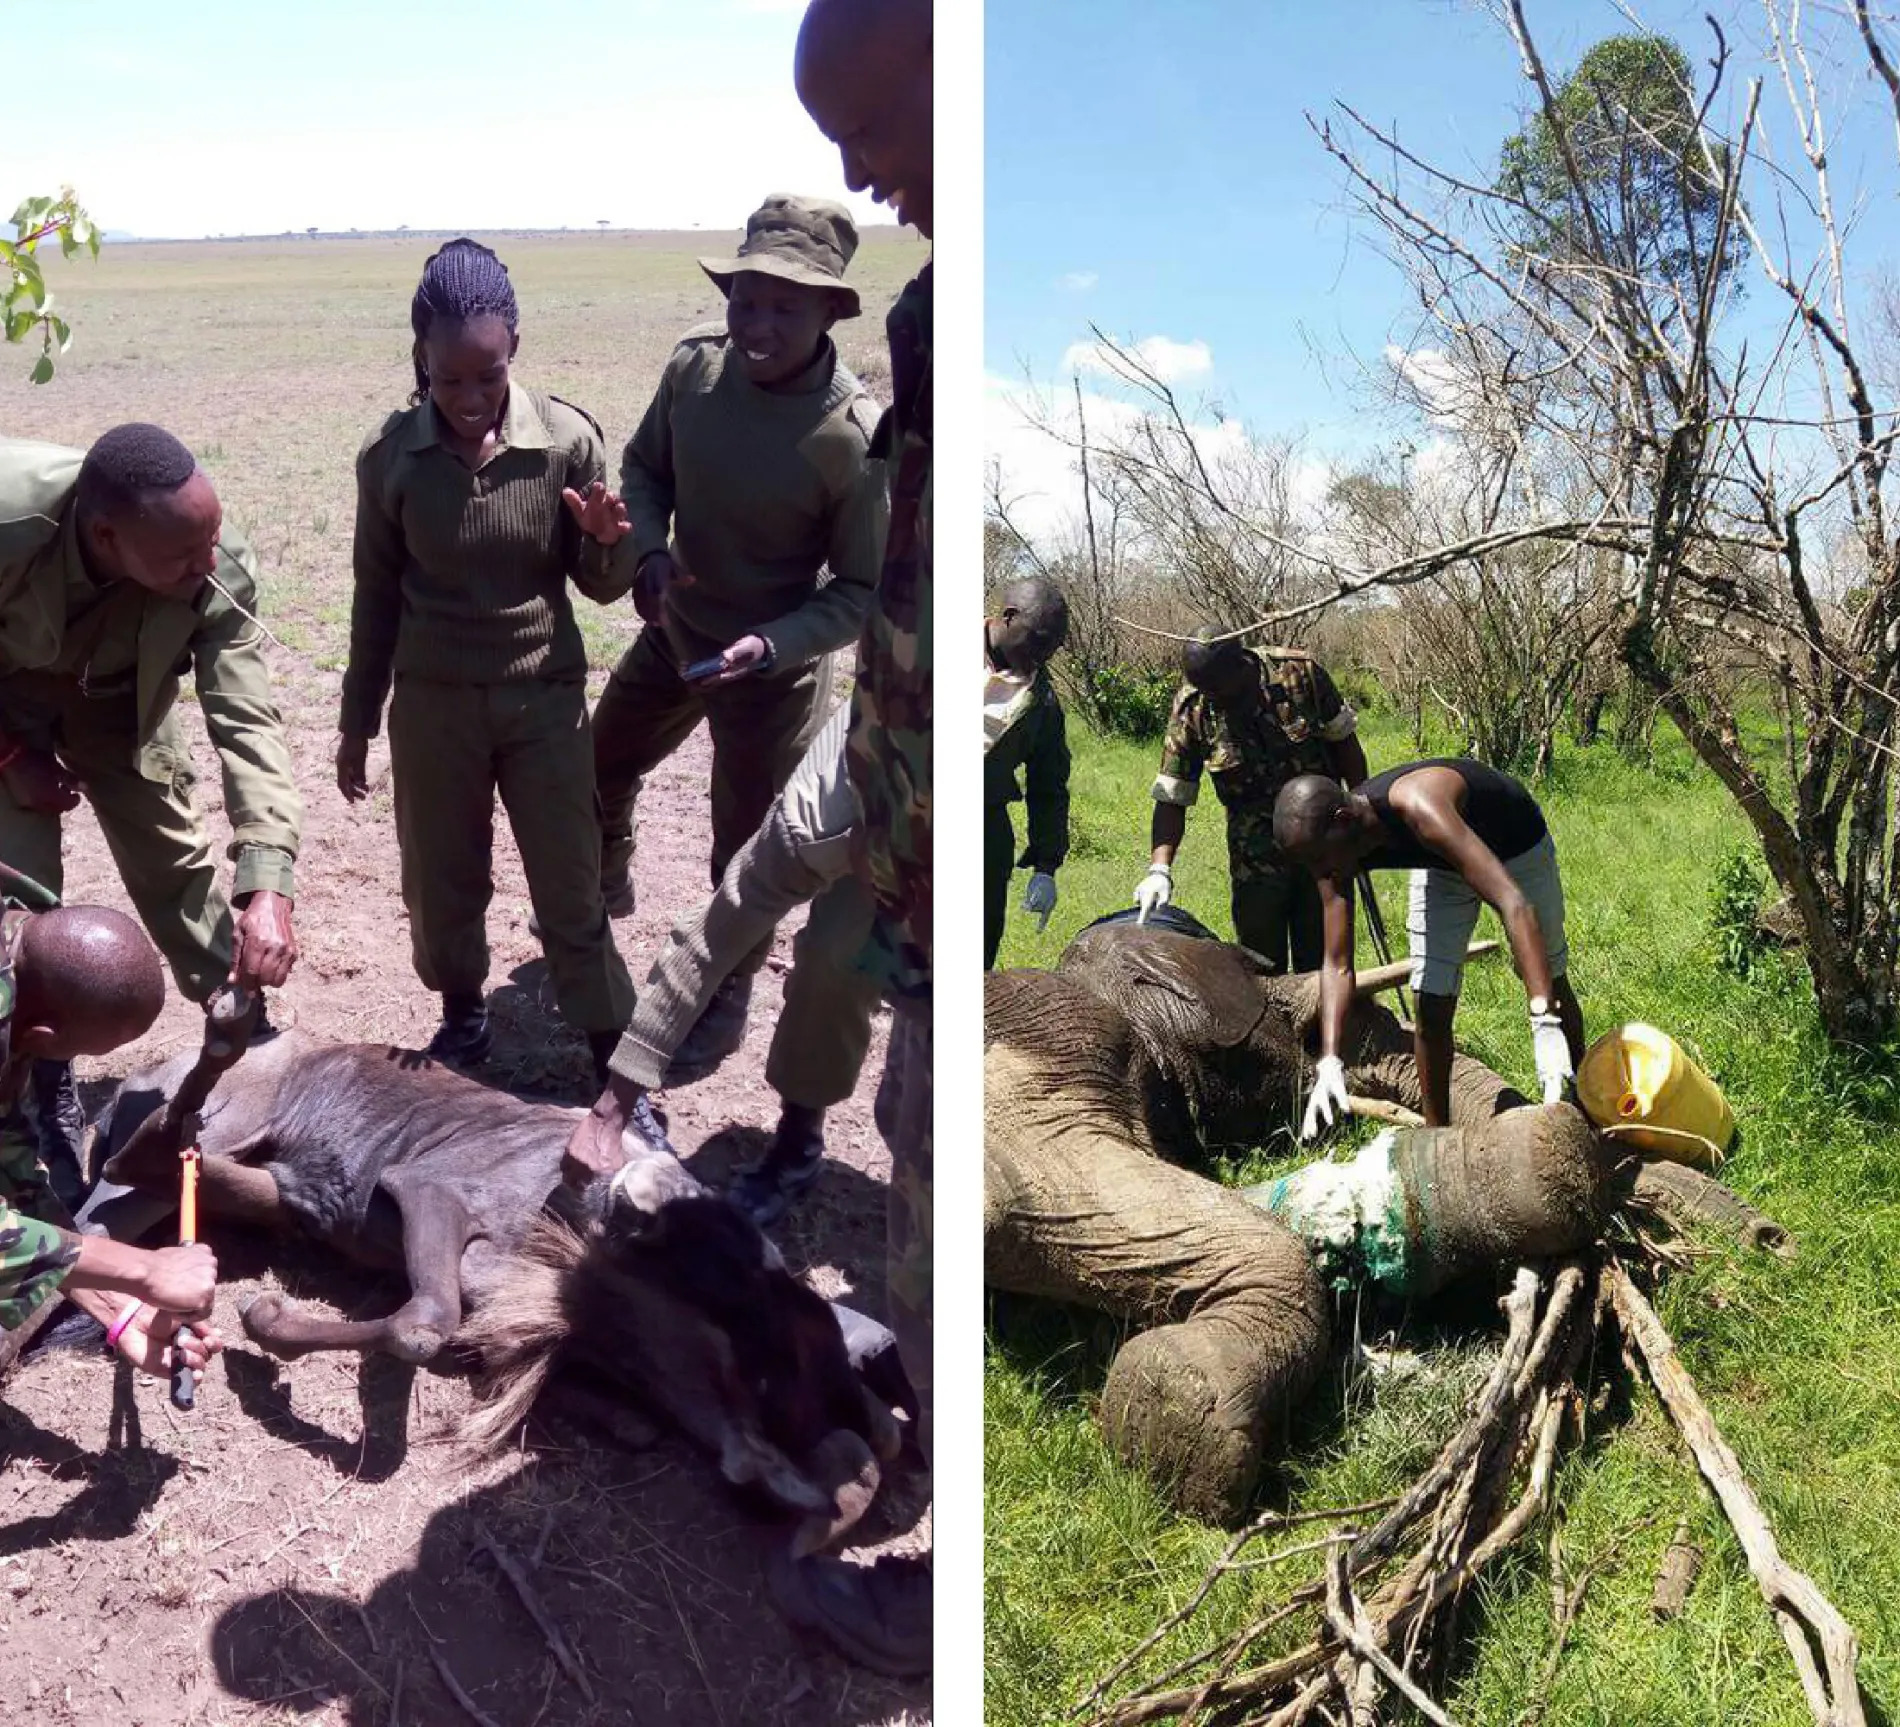 CONSERVANCY RANGERS RESCUING A WILDEBEEST AND ELEPHANT FROM SNARES FOUND IN THE MARA TRIANGLE